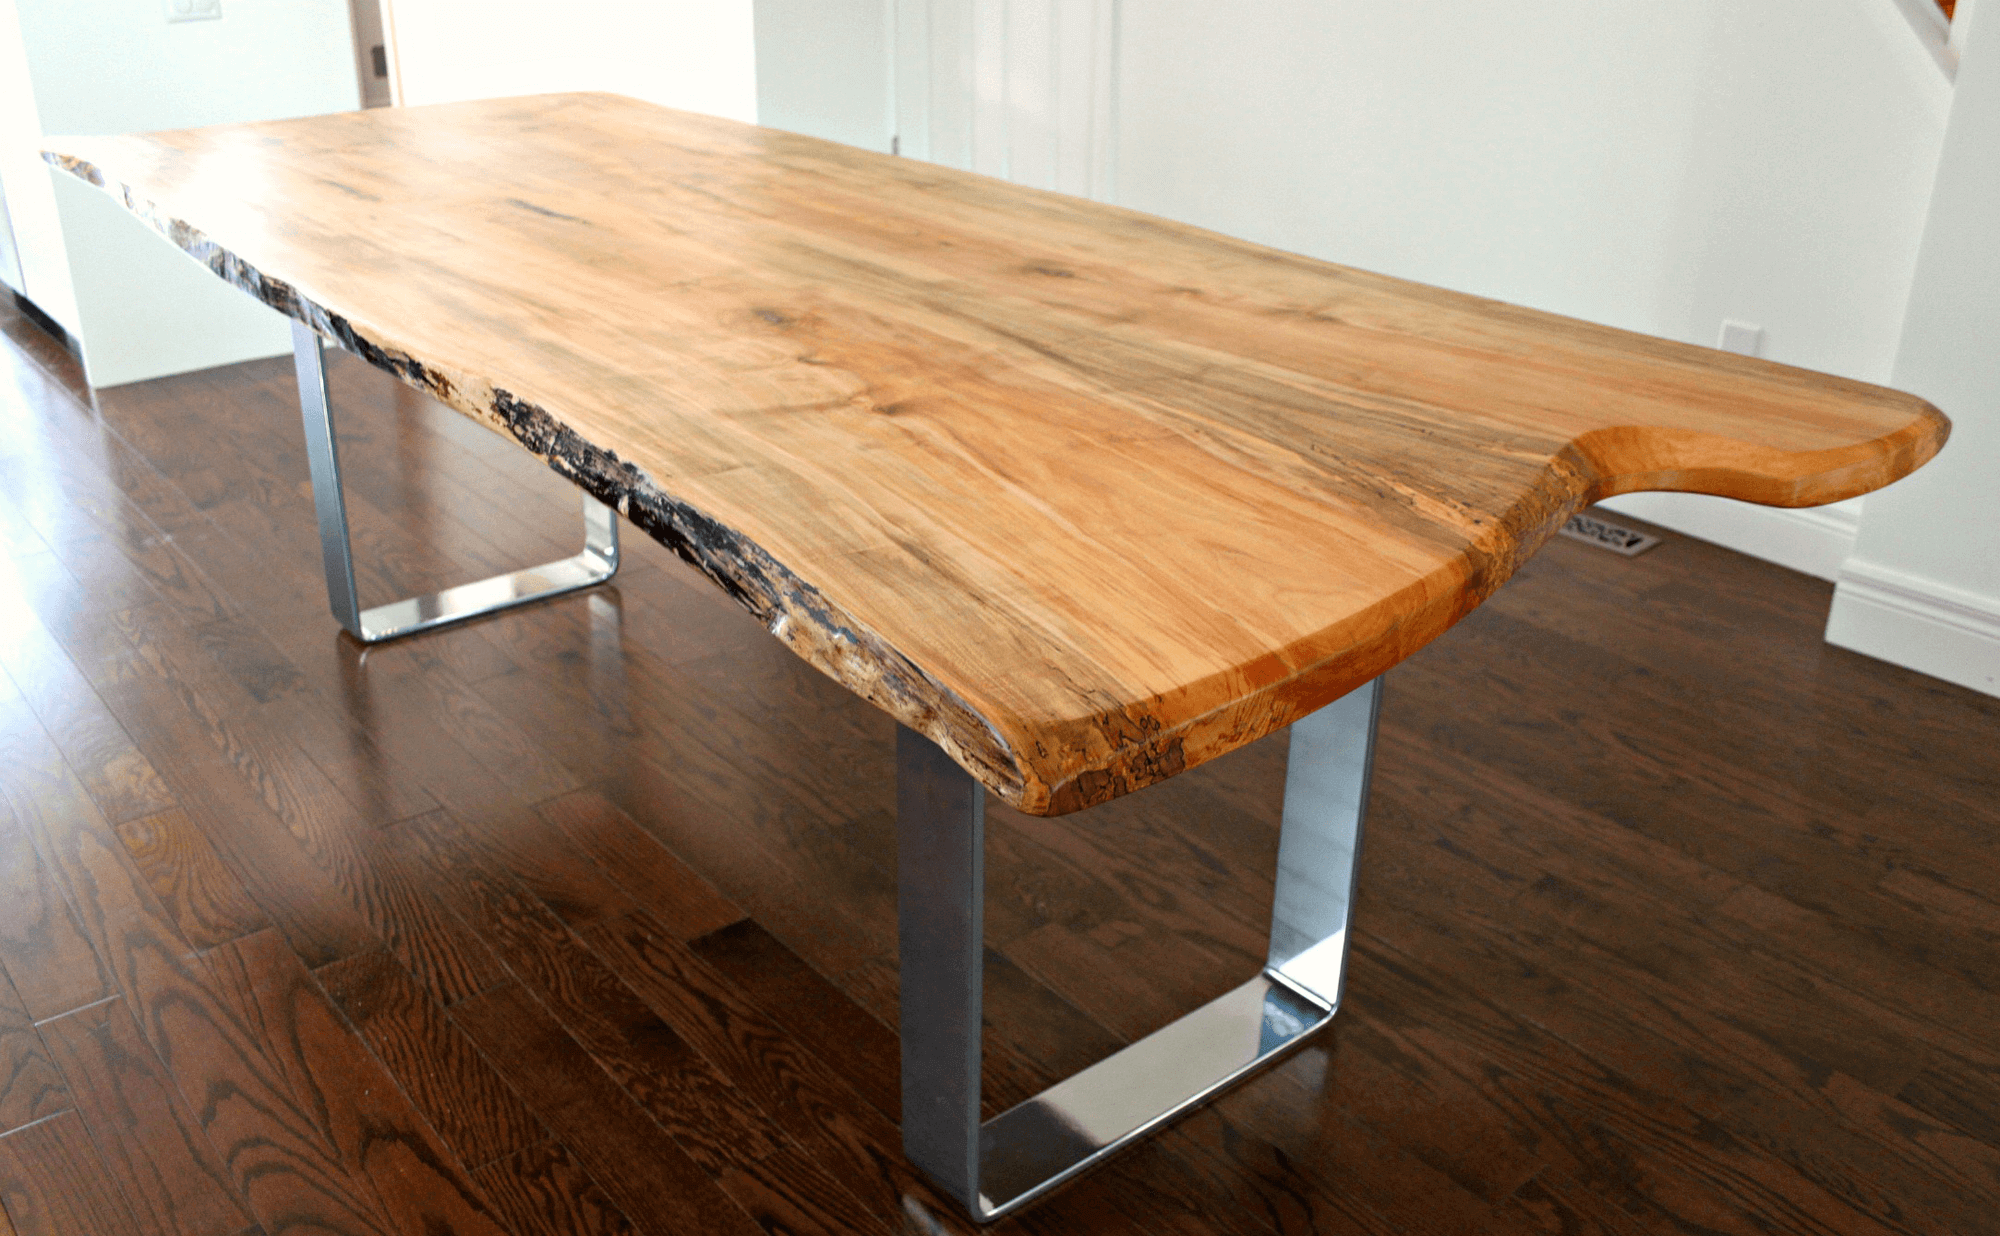 Live Edge Maple Table With Modern Chrome Base